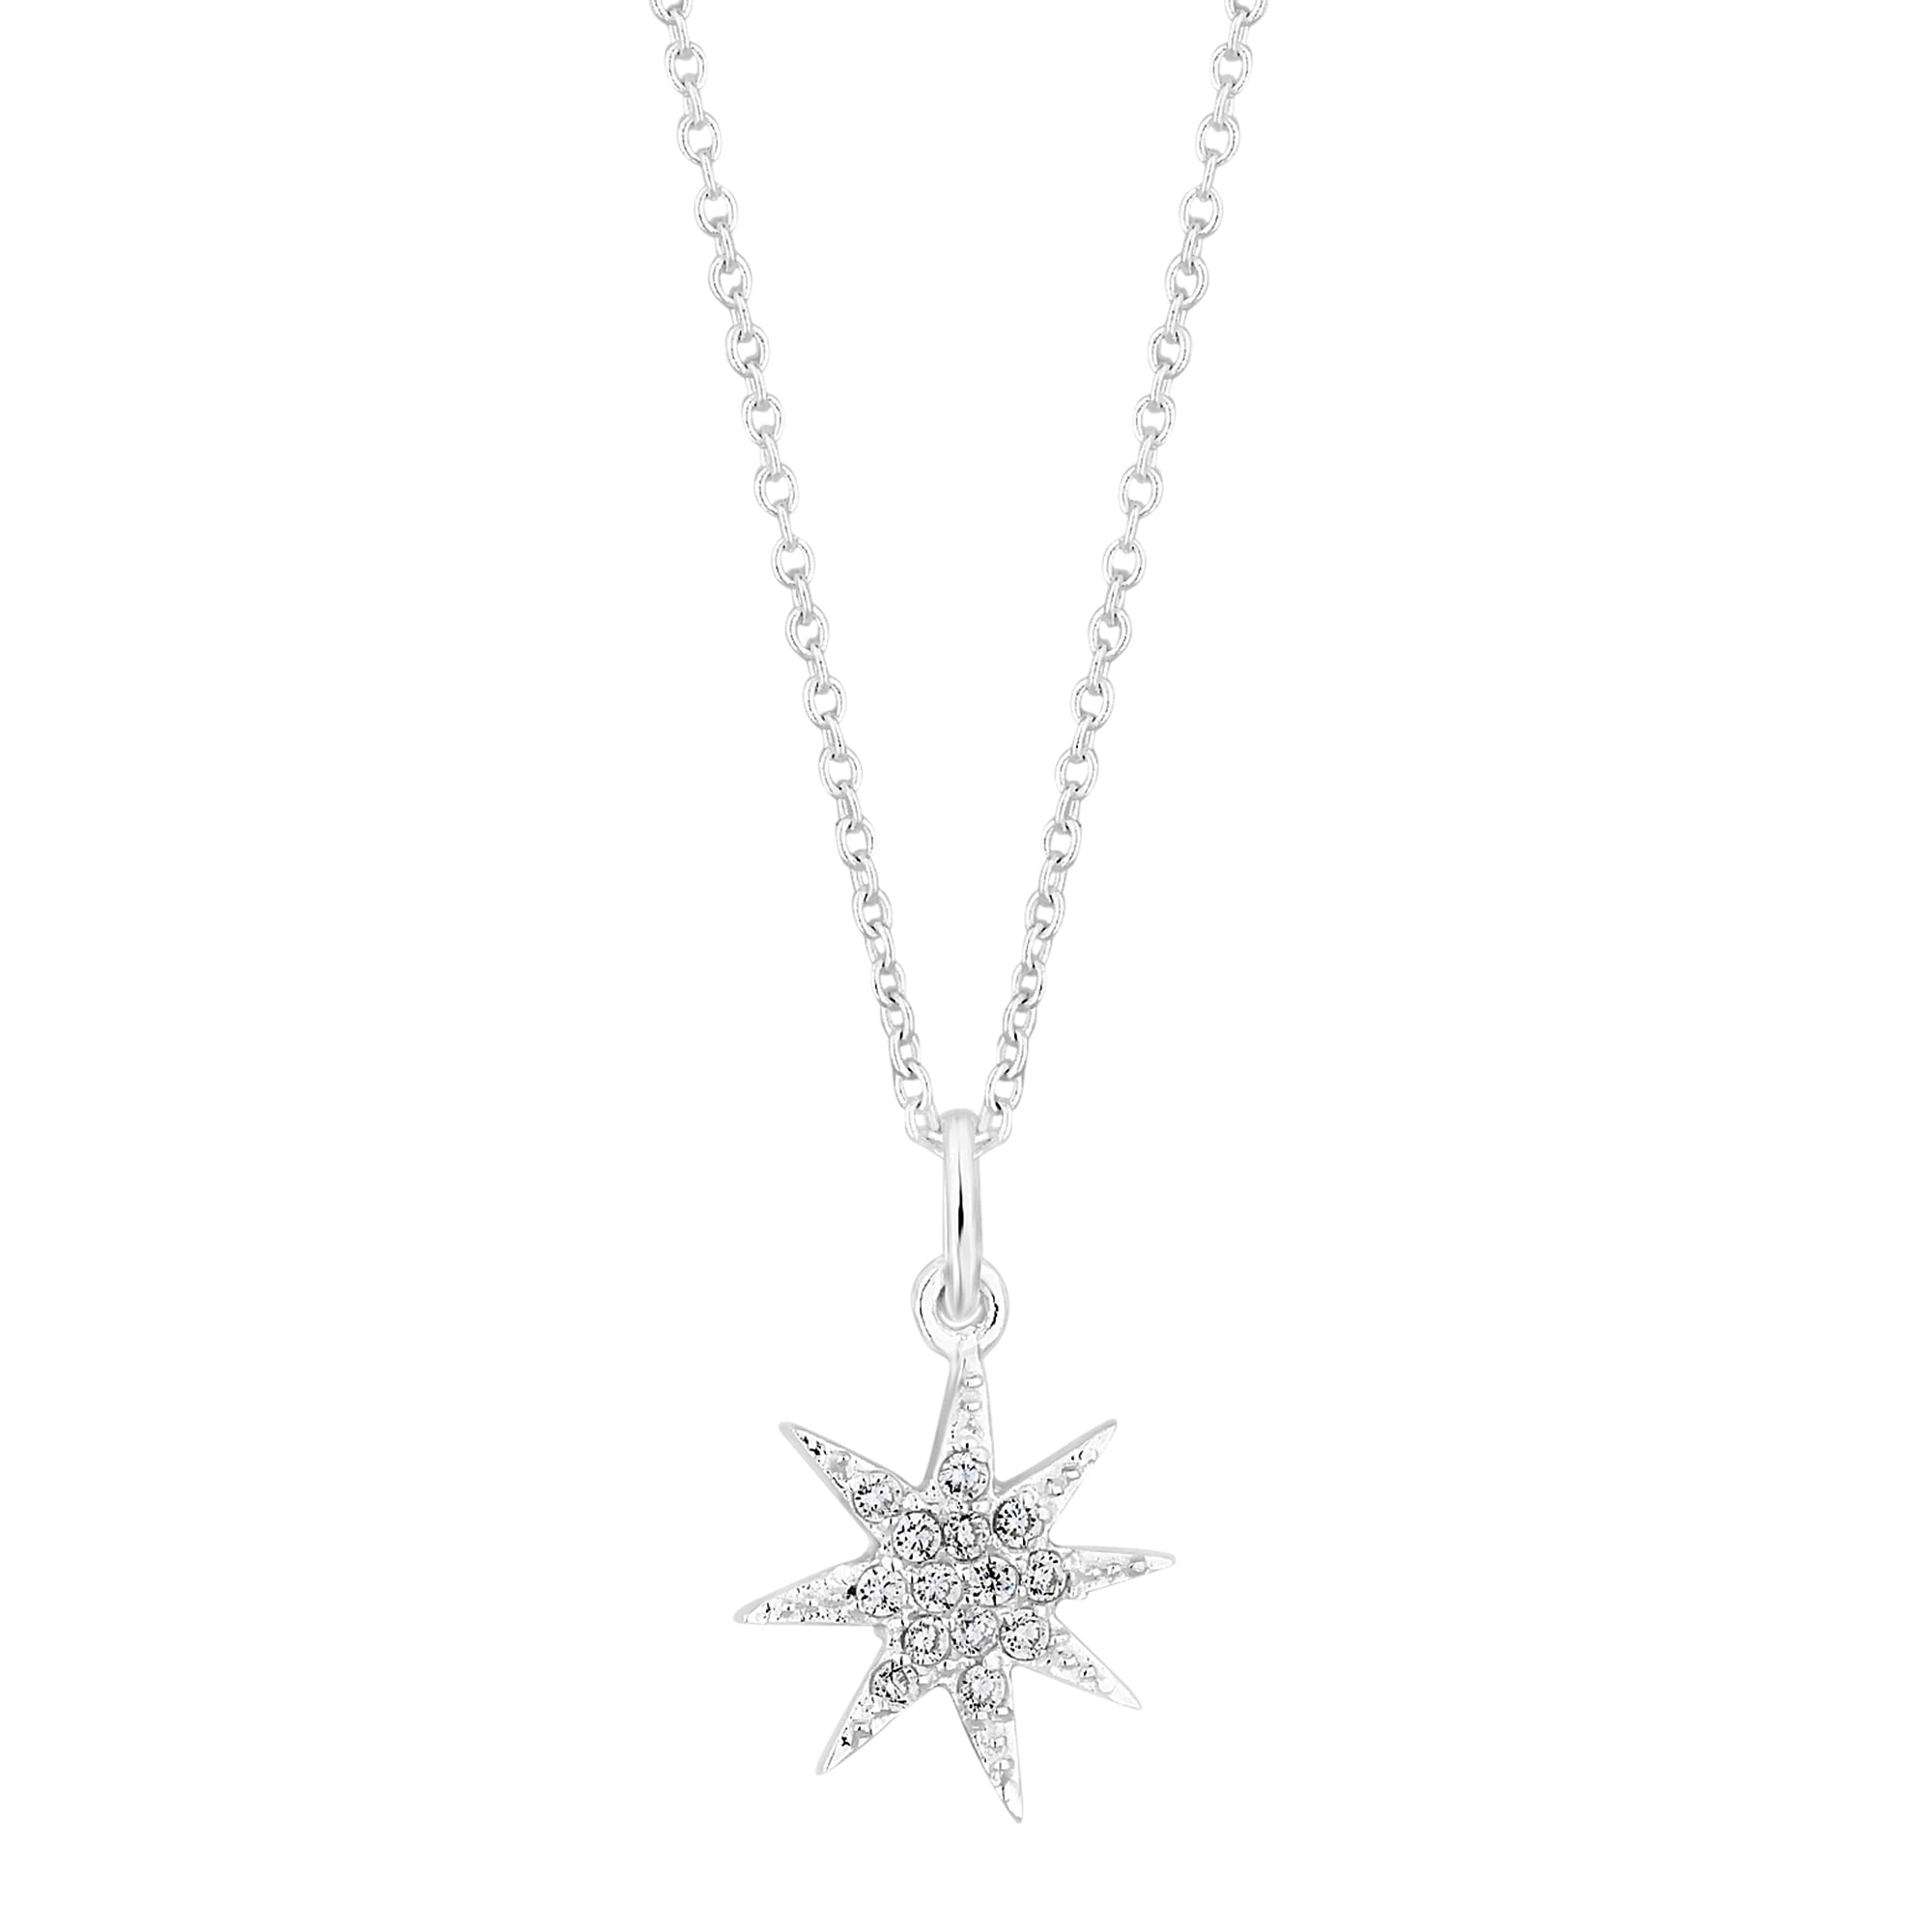 Simply silver sterling silver cubic zirconia north star pendant sterling silver cubic zirconia north star pendant necklace mozeypictures Image collections